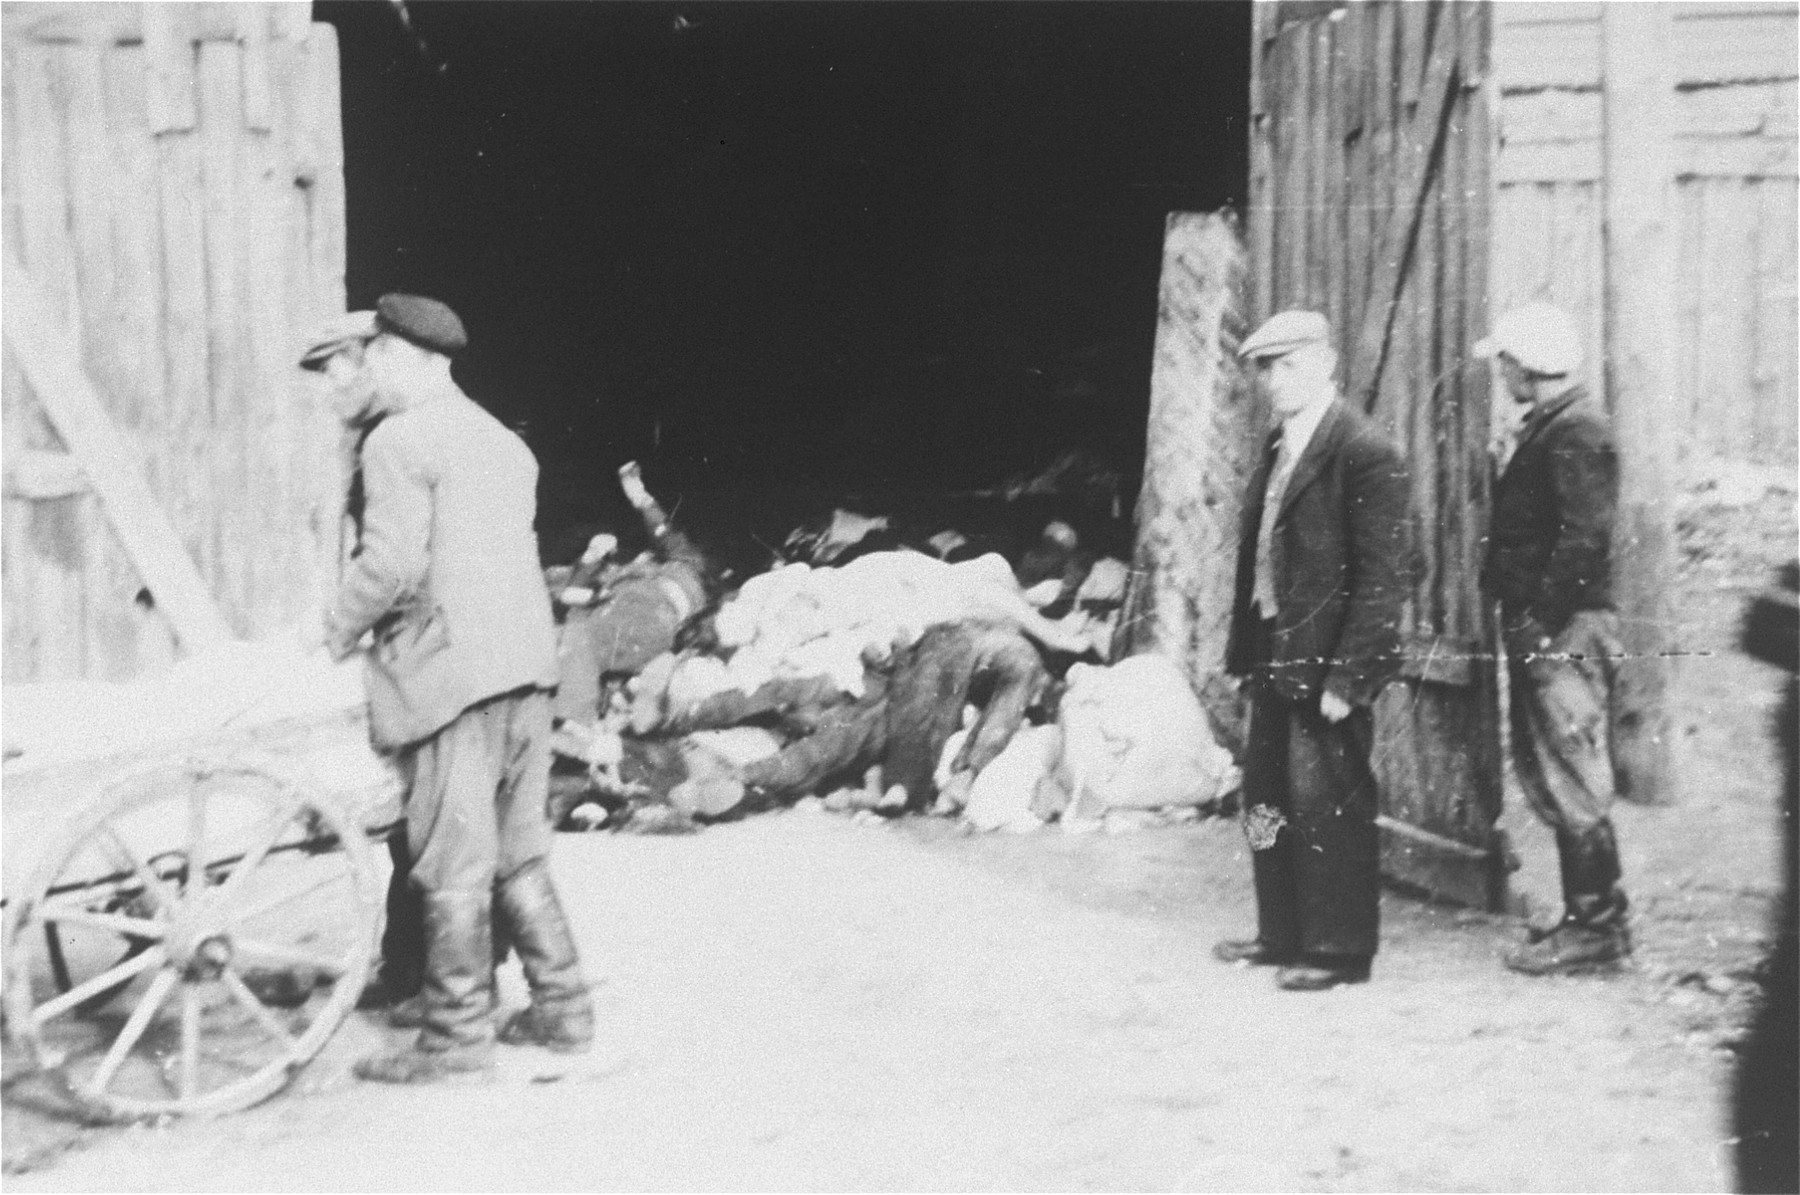 A Jewish council official named Kaminski (right, in front of the door) watches as men remove corpses from a cart and pile them in a barn in the Deblin Irena ghetto.